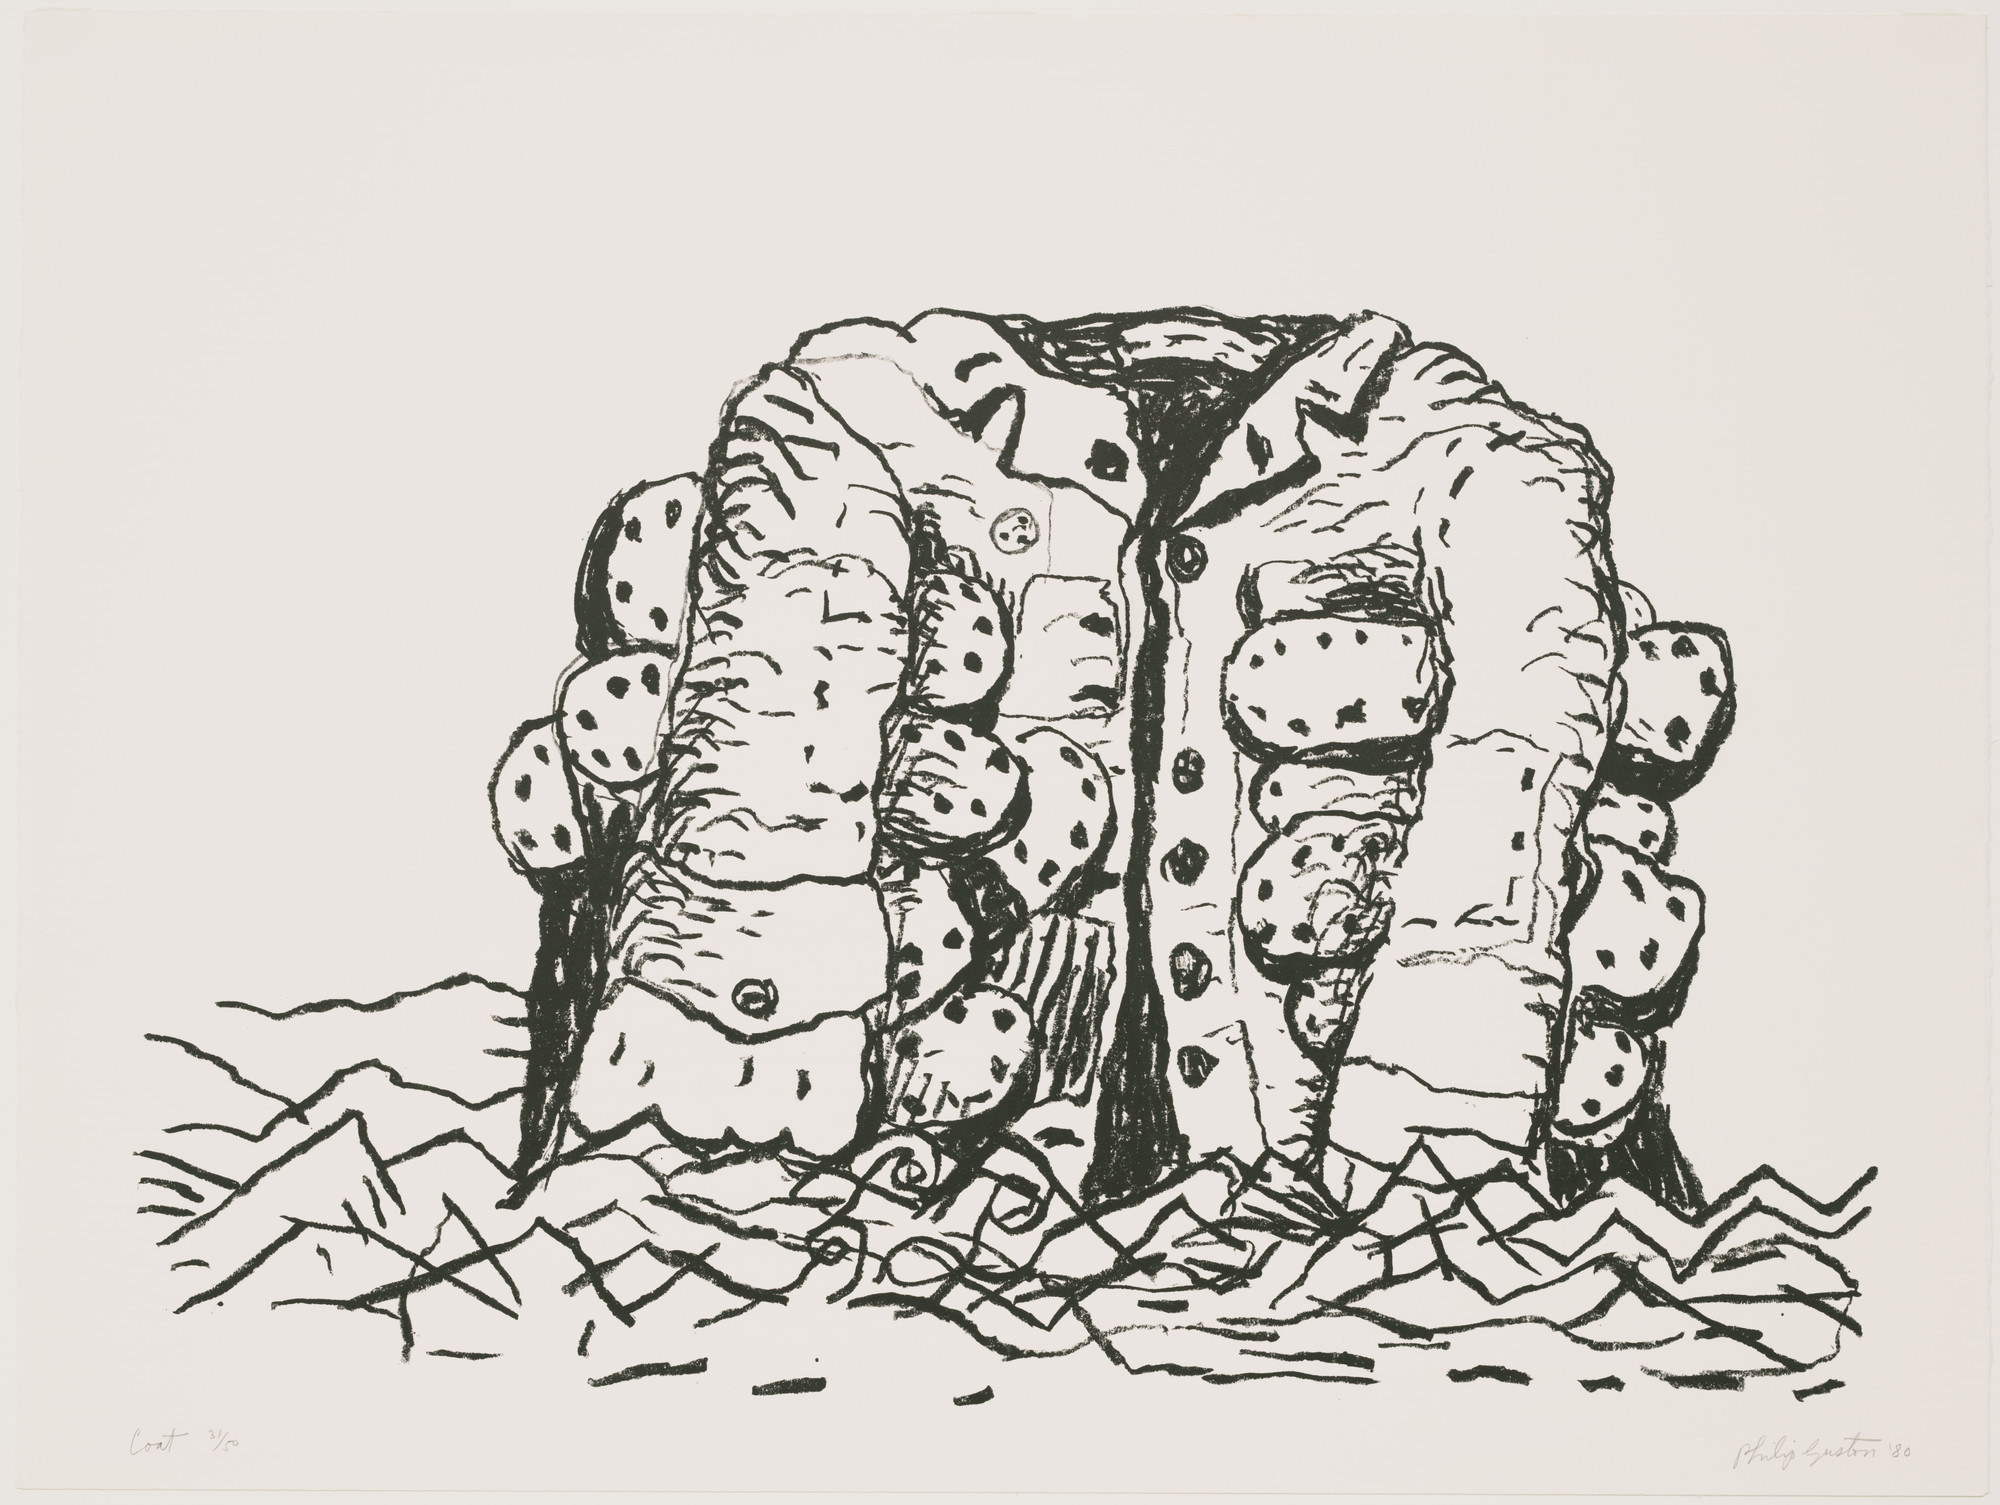 Philip Guston. Coat. 1980